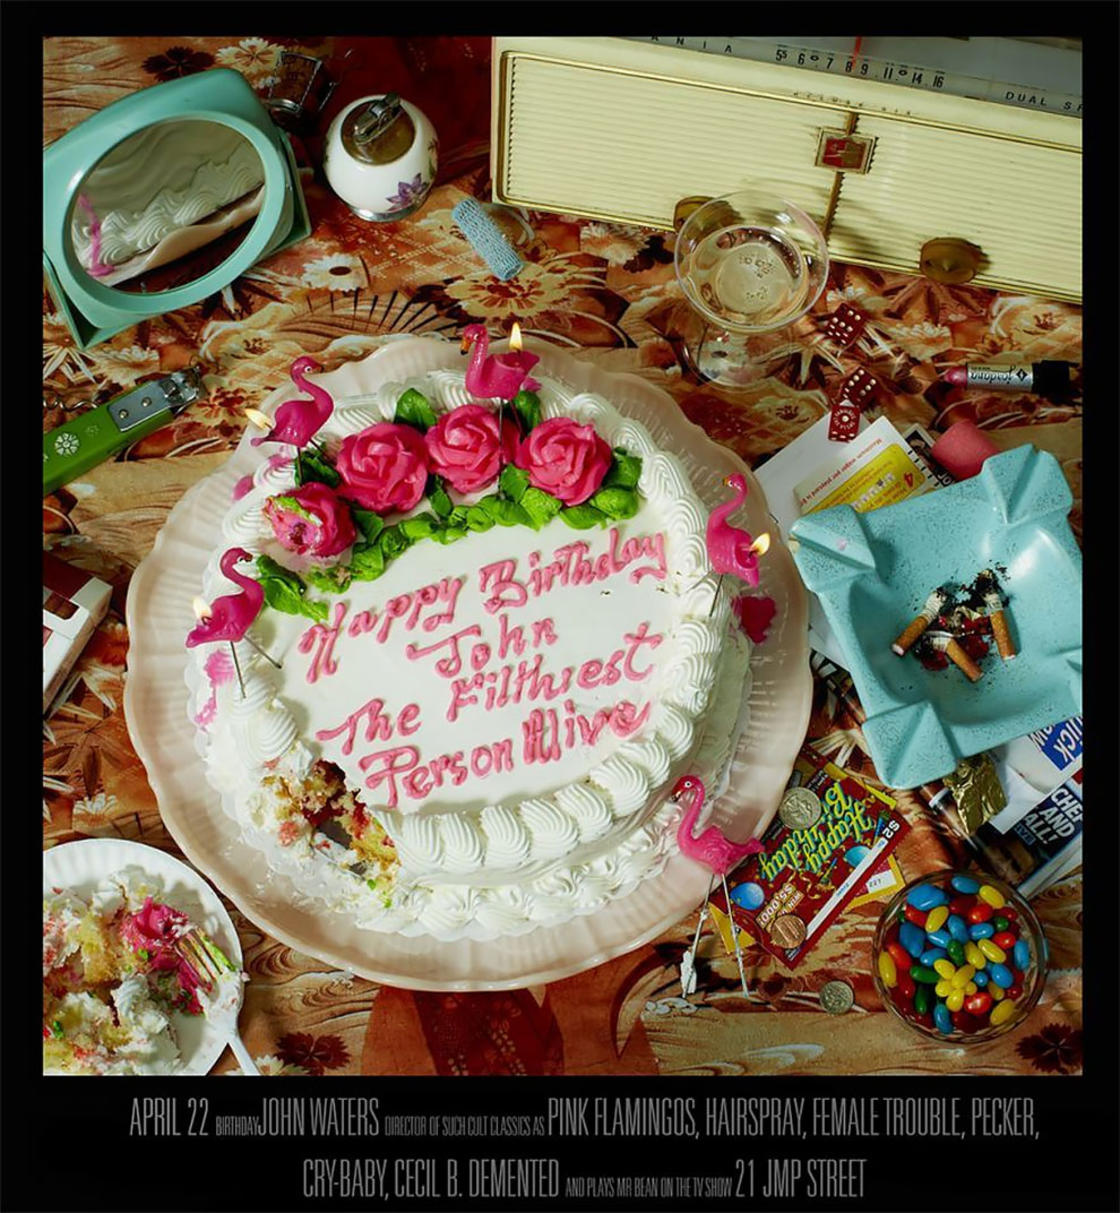 The birthday cakes of Hollywood famous directors